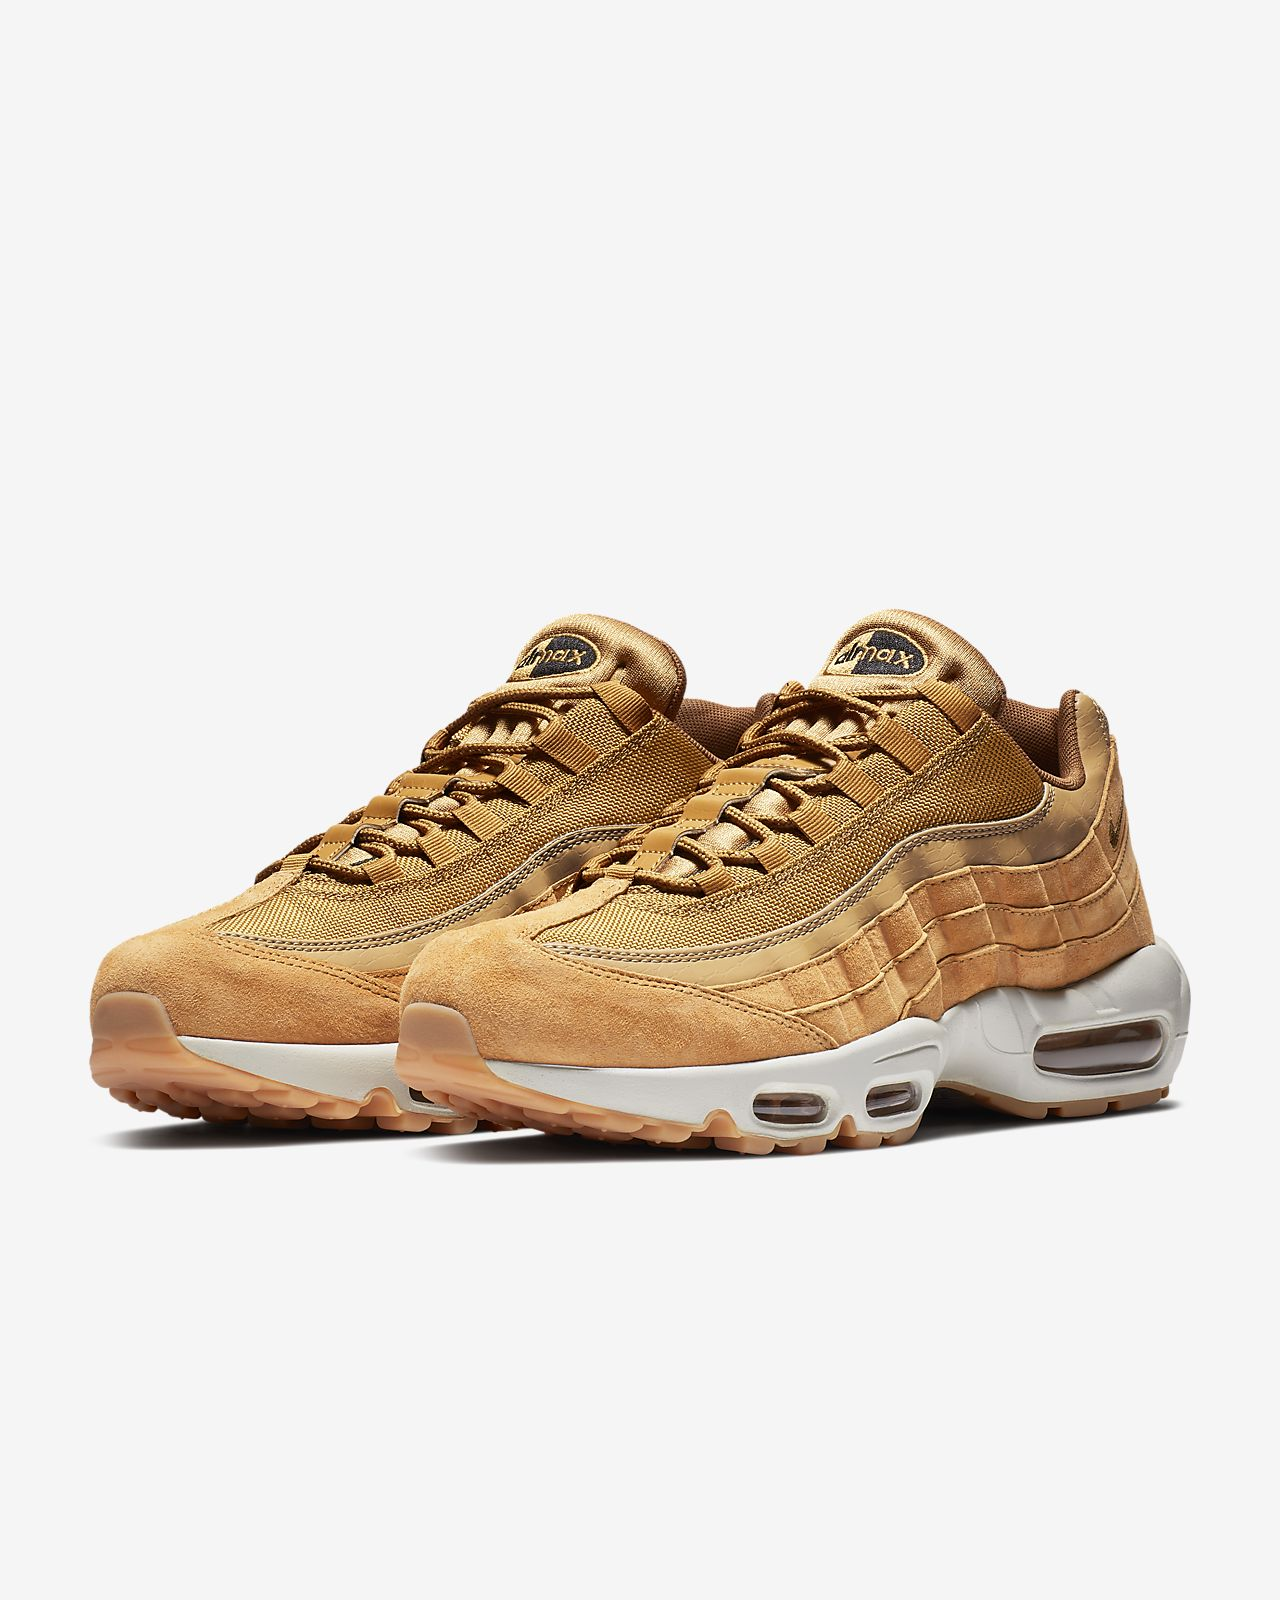 hot sale online f37a7 c5090 ... Nike Air Max 95 SE Men s Shoe